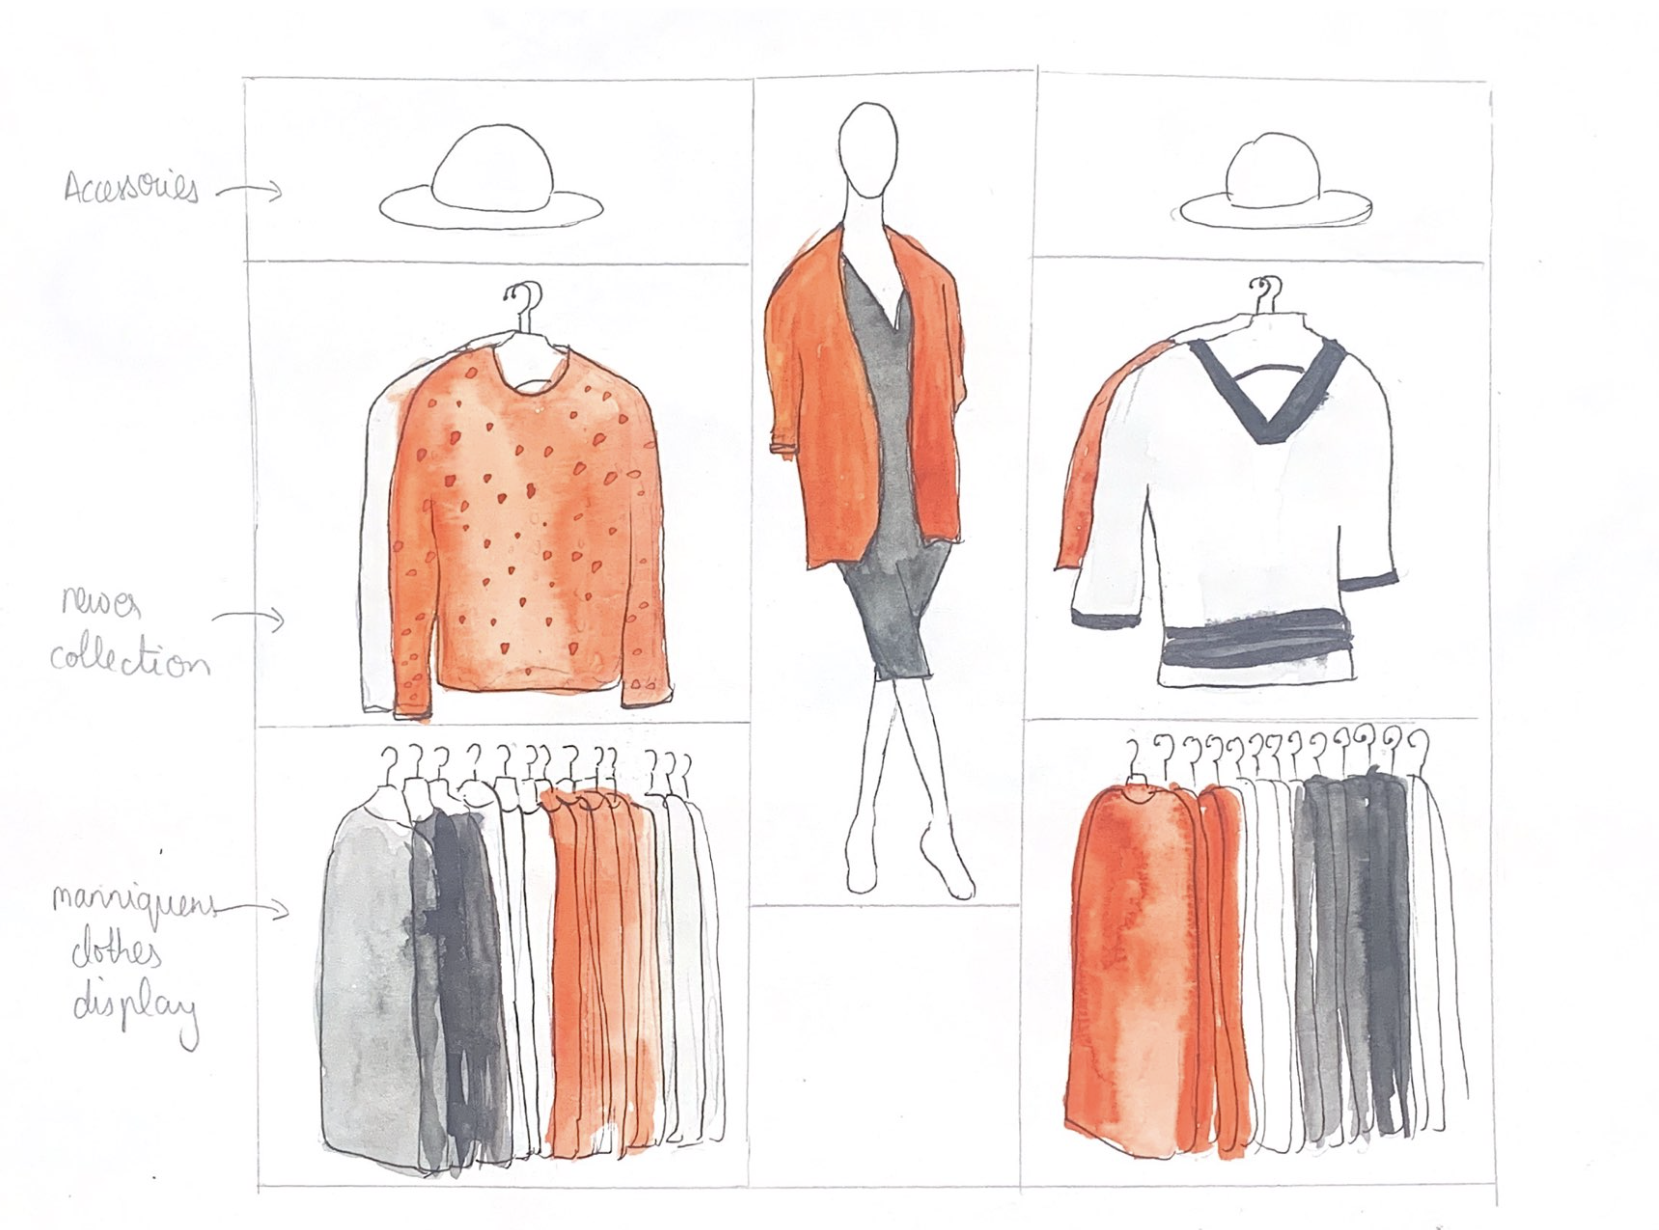 Illustration of a clothing rack within a retail shop